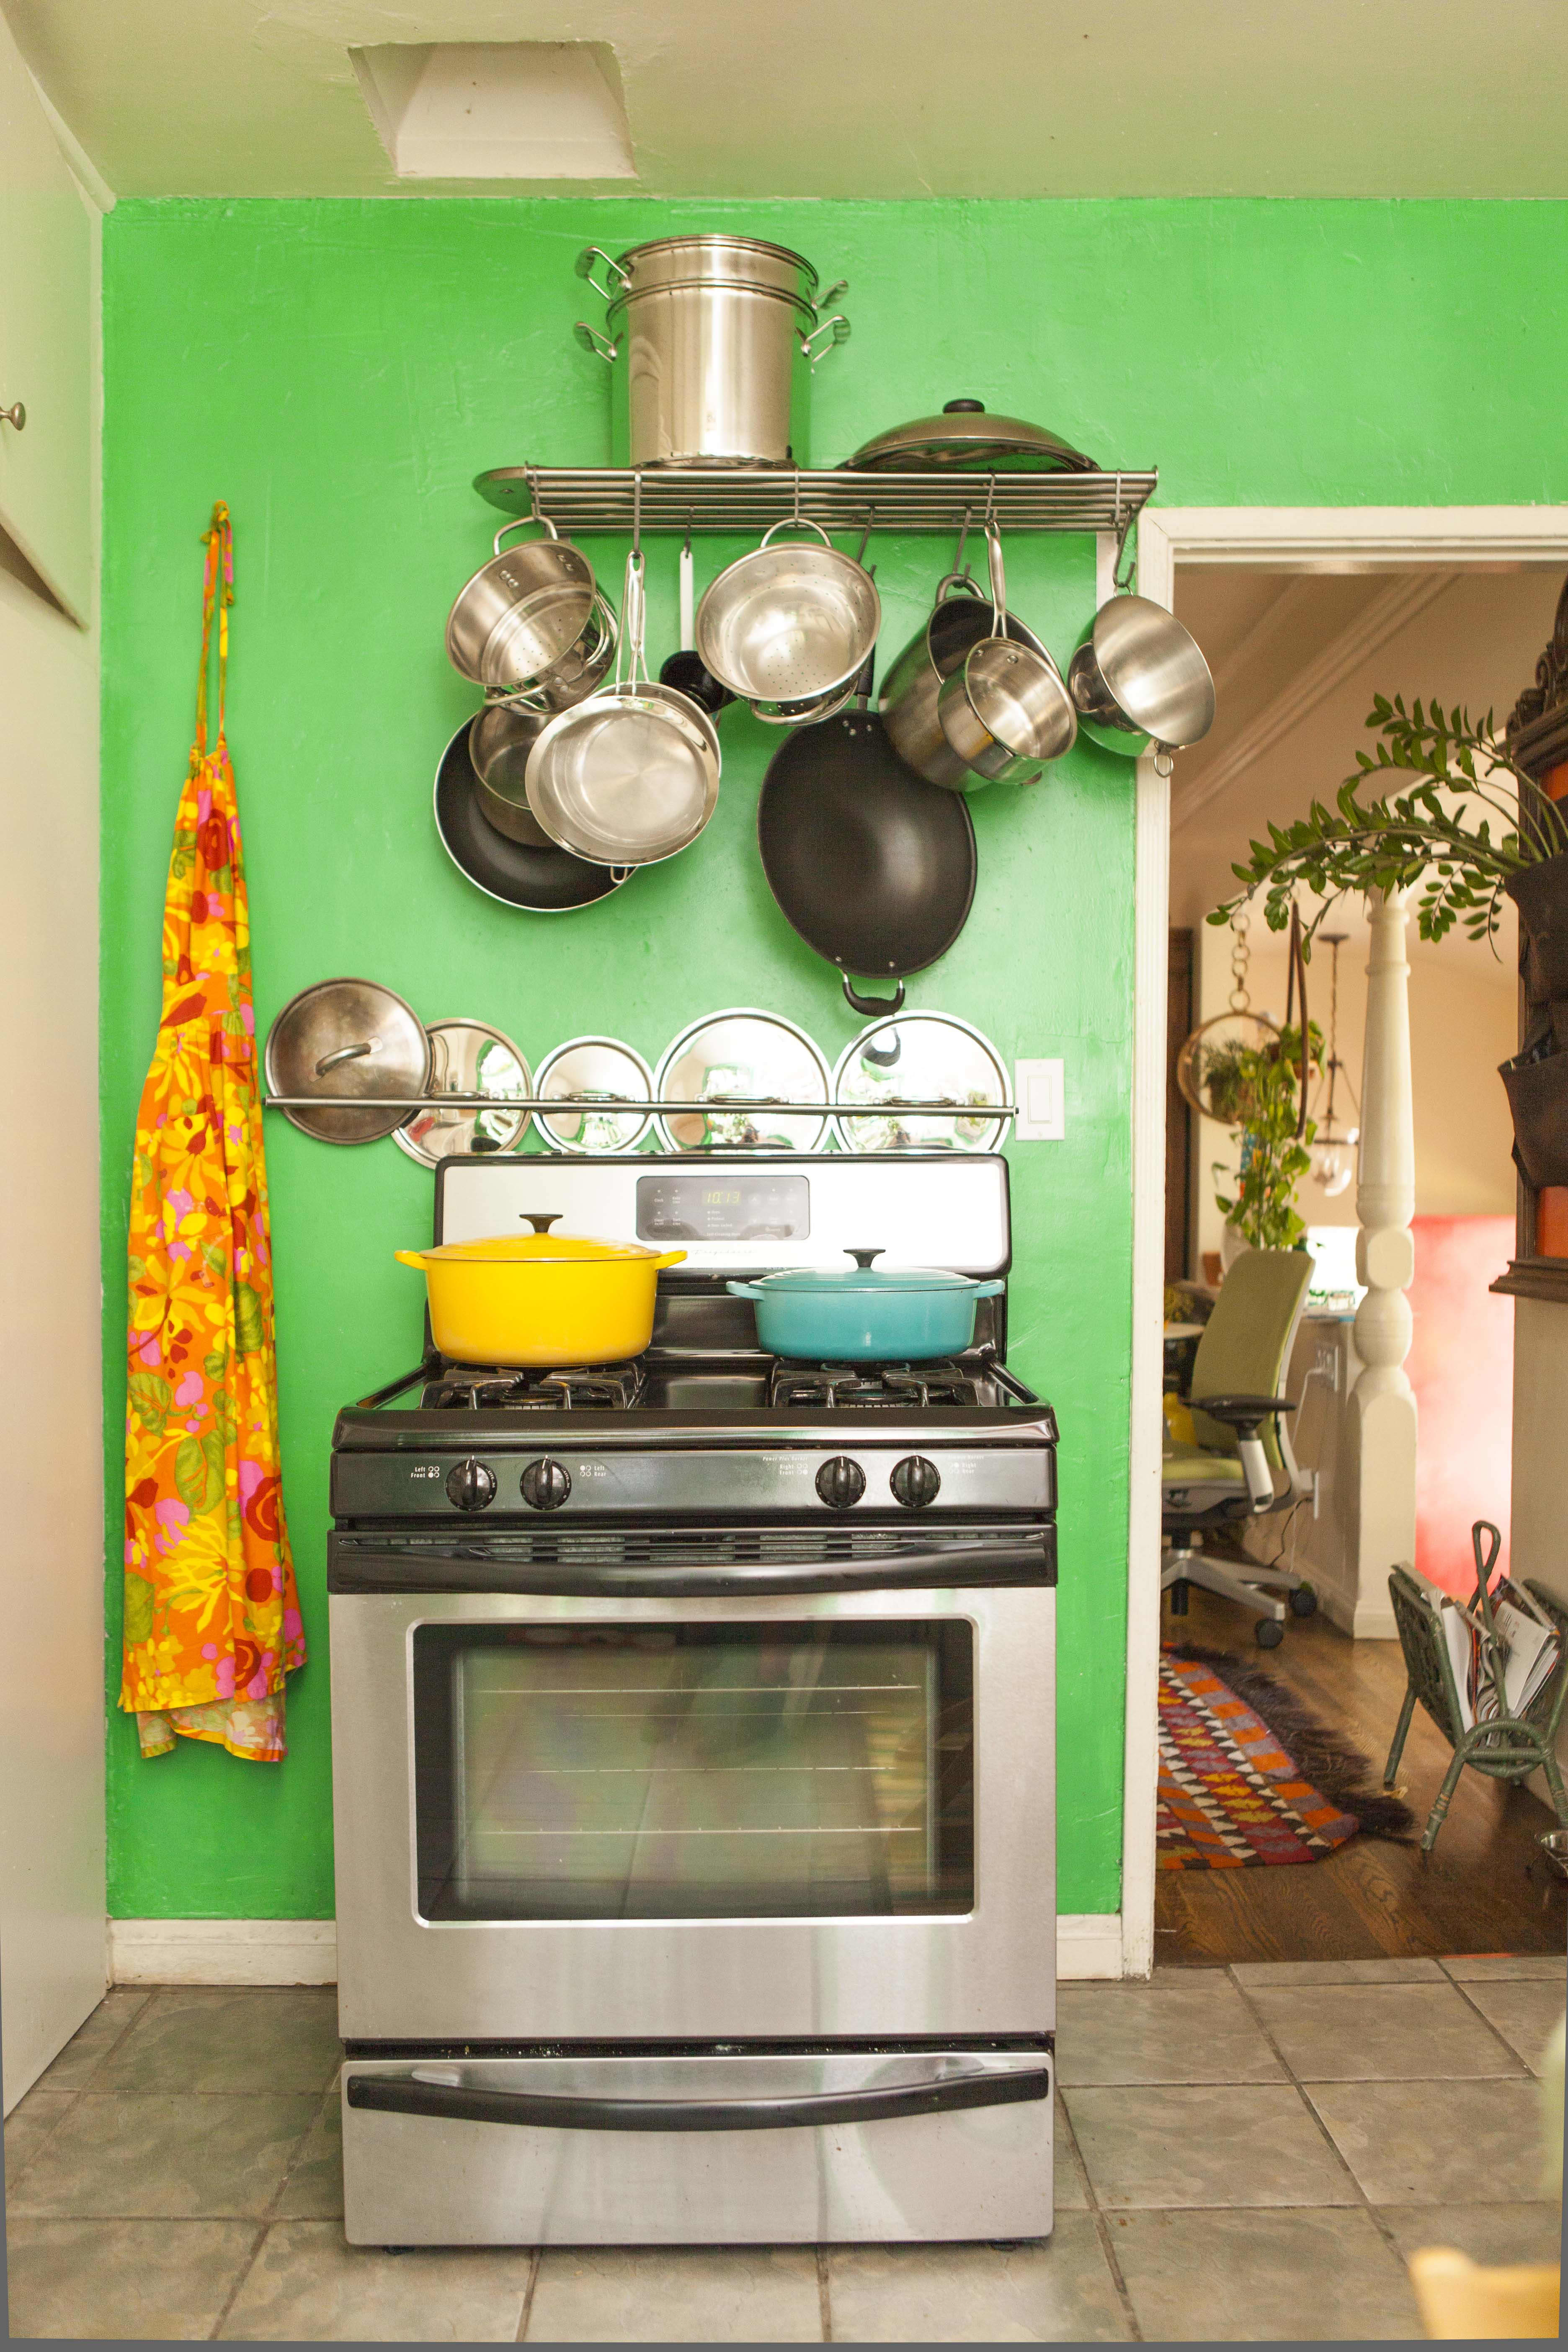 20 Paint Colors We Love in the Kitchen: gallery image 6